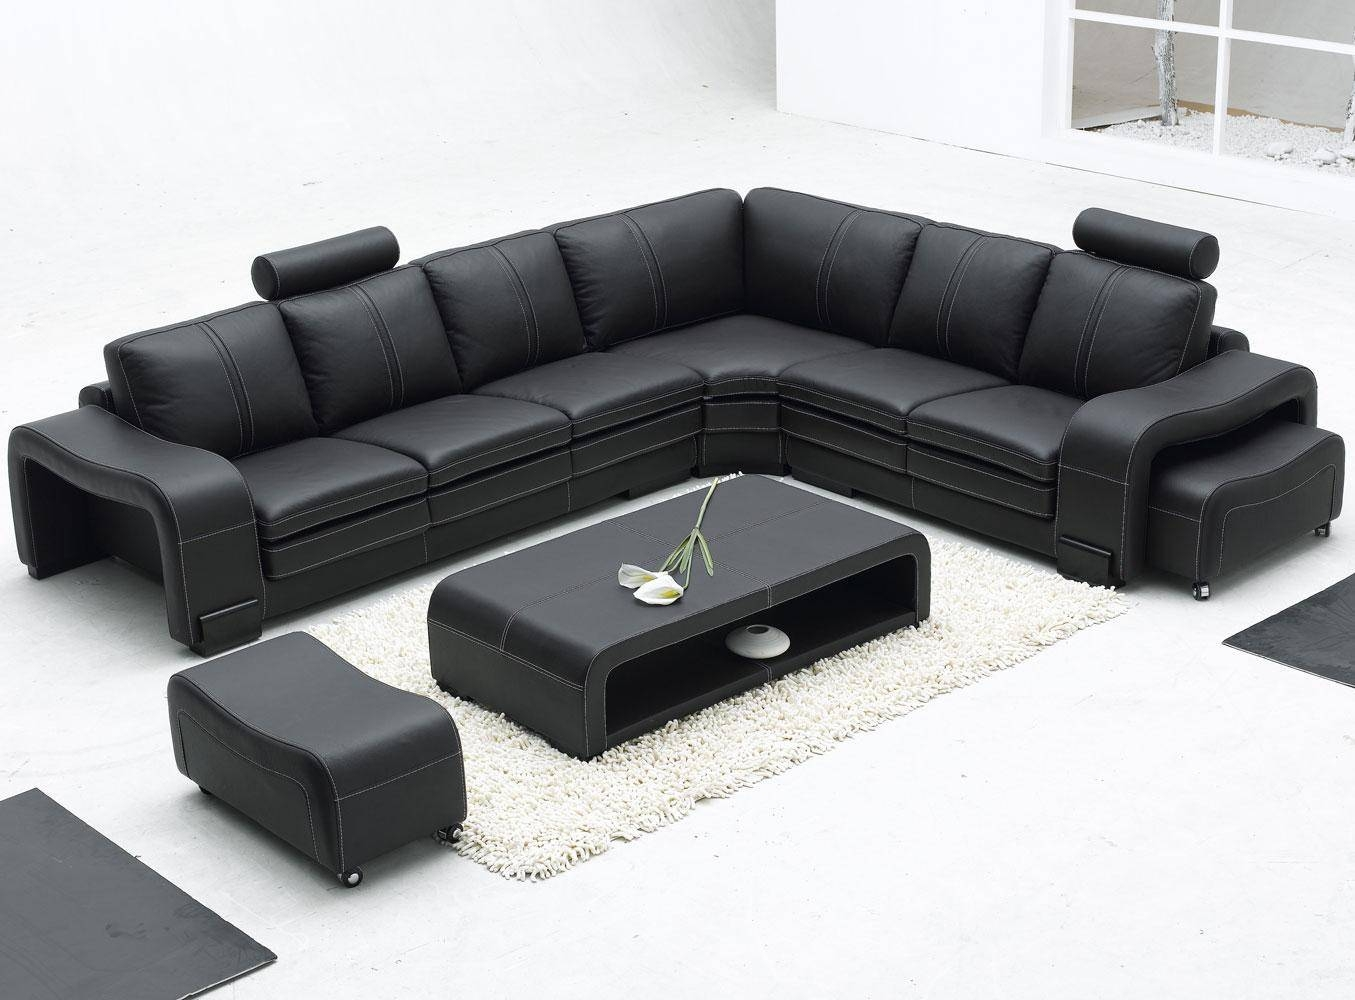 Taking Care The Modern Black Leather Sectional - S3Net - Sectional inside Sectinal Sofas (Image 27 of 30)